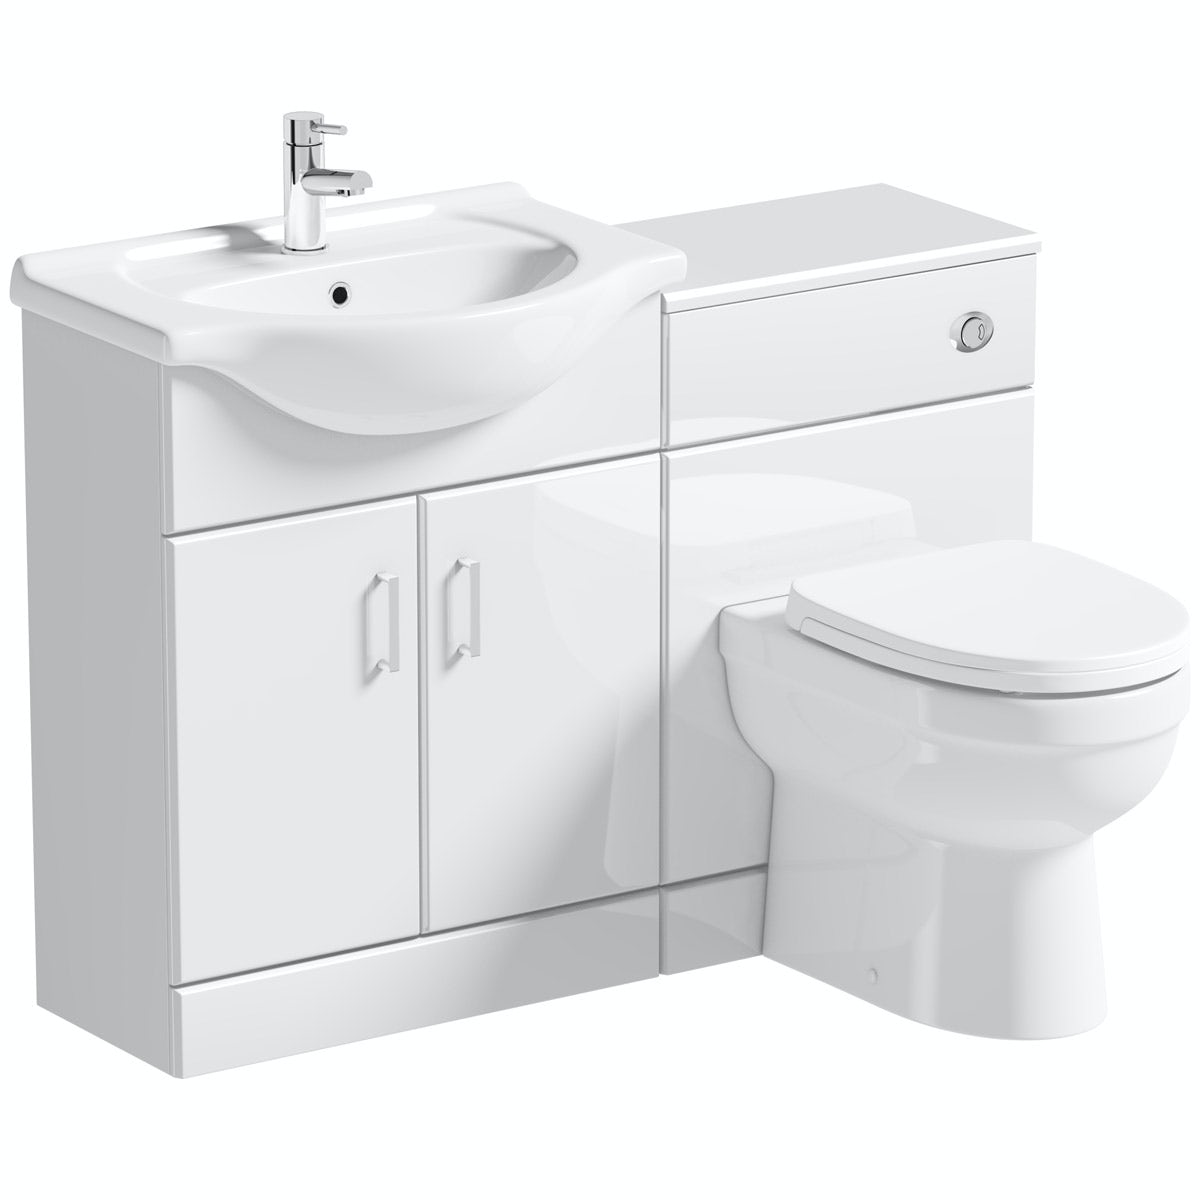 Sink And Toilet Combo Orchard Eden White 1140 Combination With Eden Back To Wall Toilet